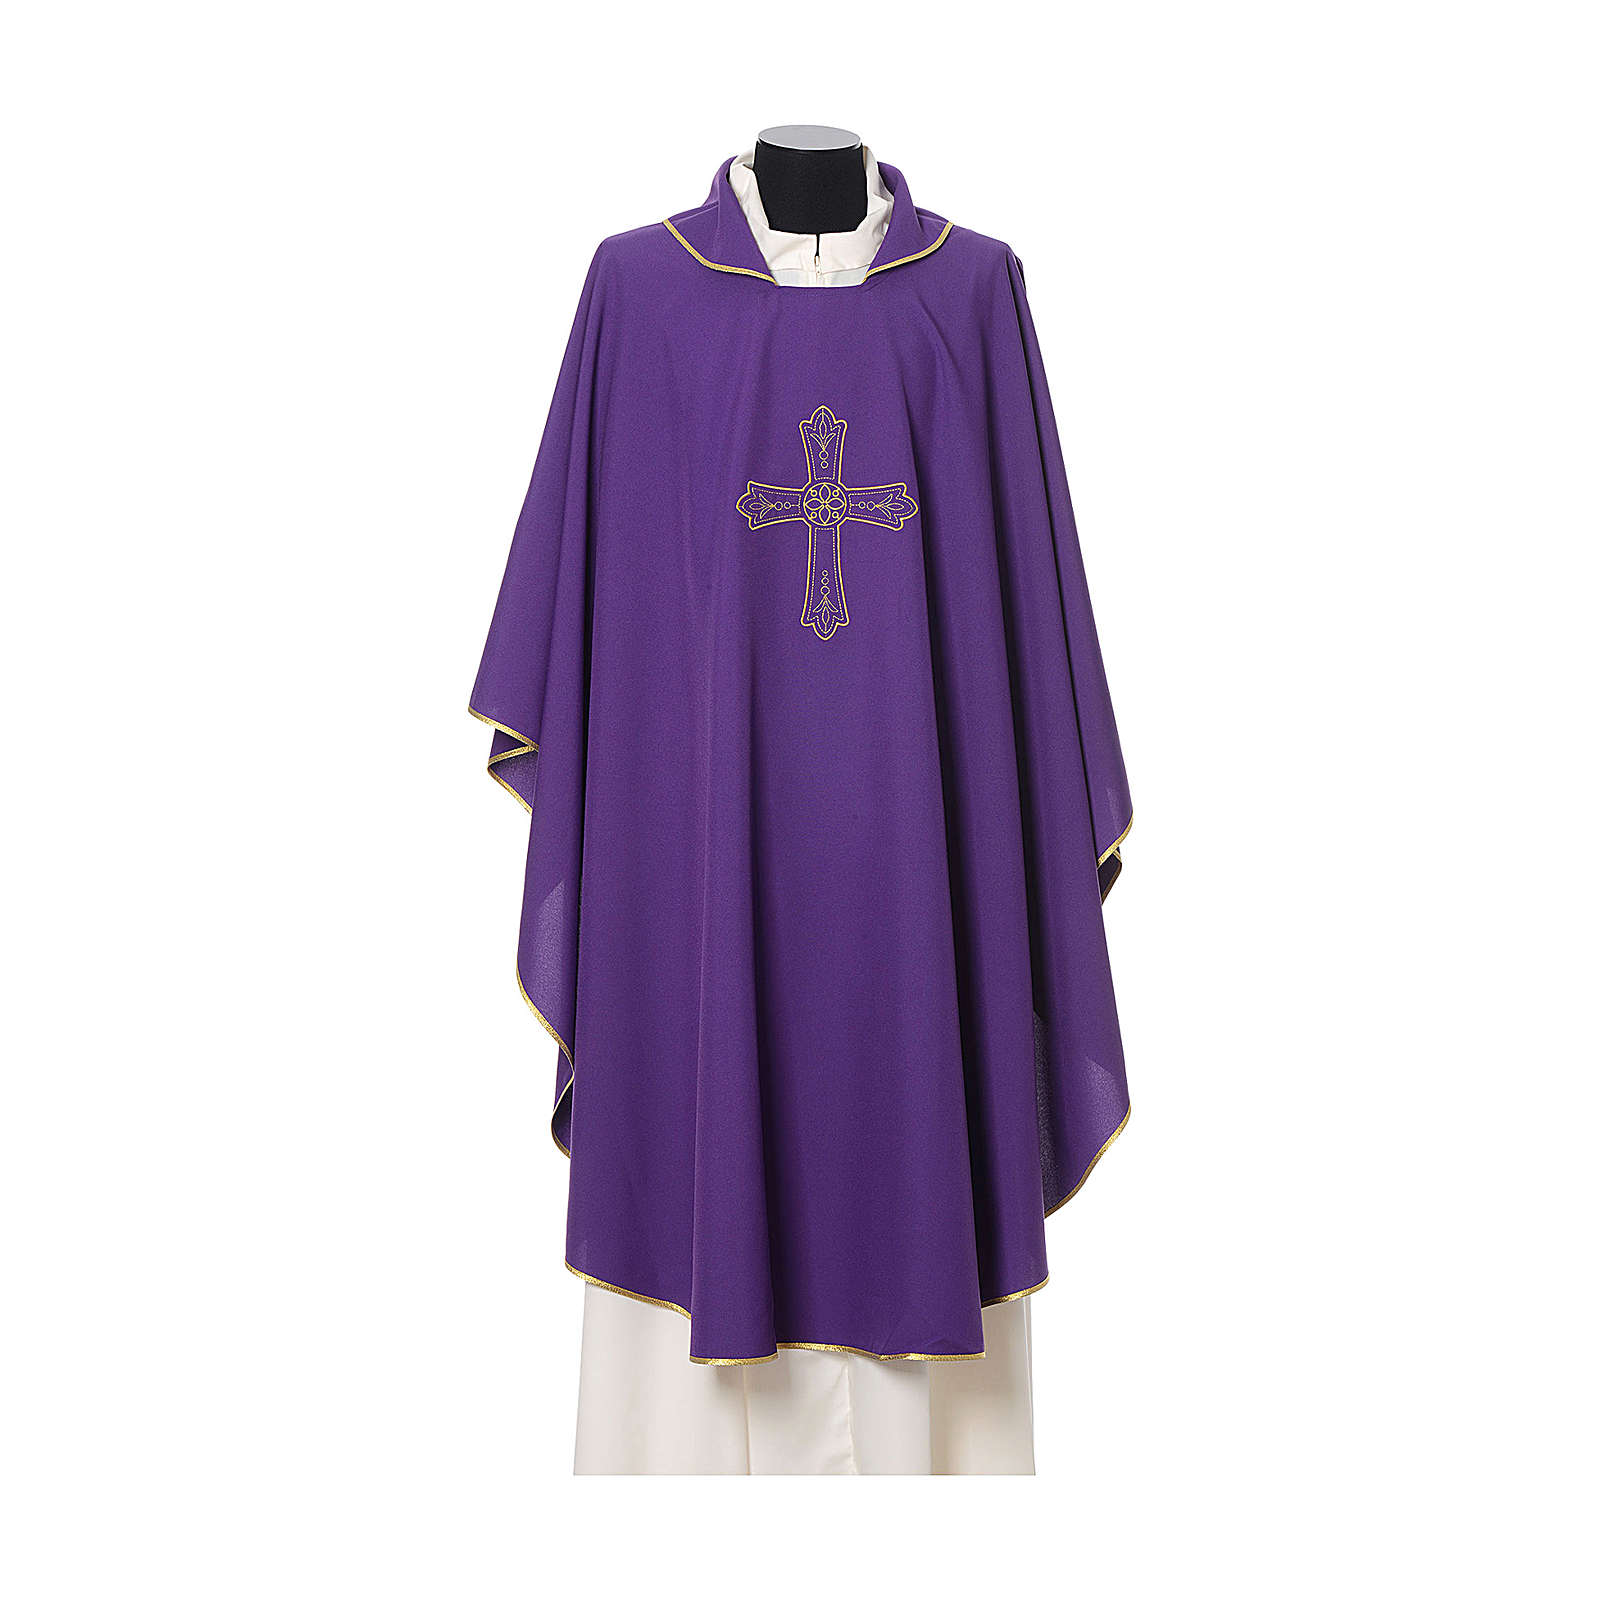 Catholic Priest Chasuble with cross and flower embroidered on front and back, Vatican fabric 4